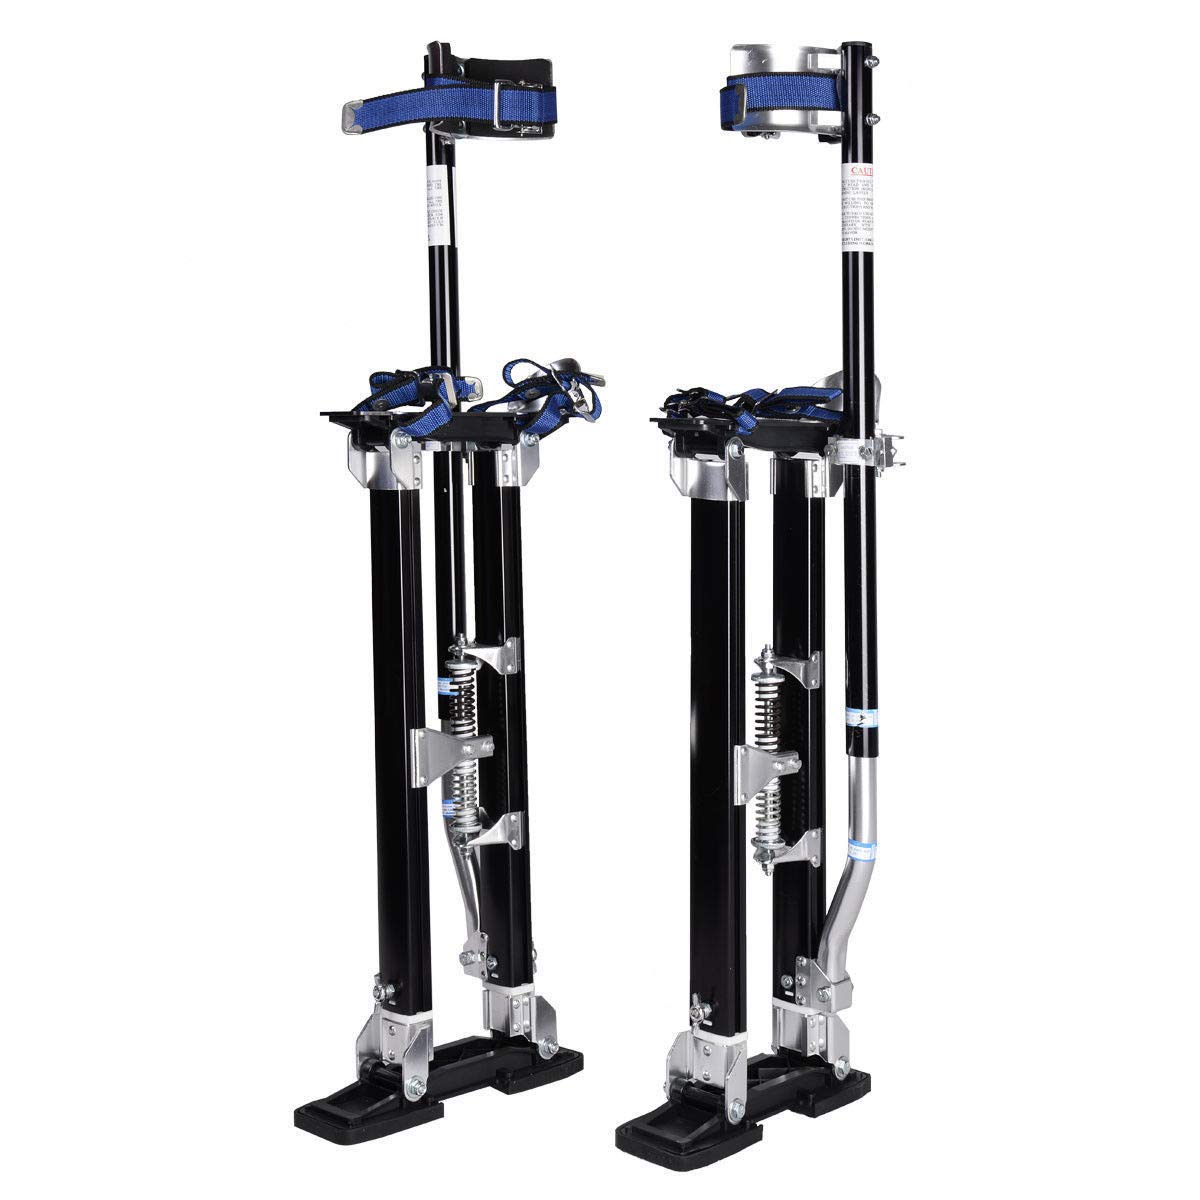 WINMART 24-40 Inch Drywall Stilts Aluminum Tool Stilt For Painting Painter Walk, Stilts Painting (Black)